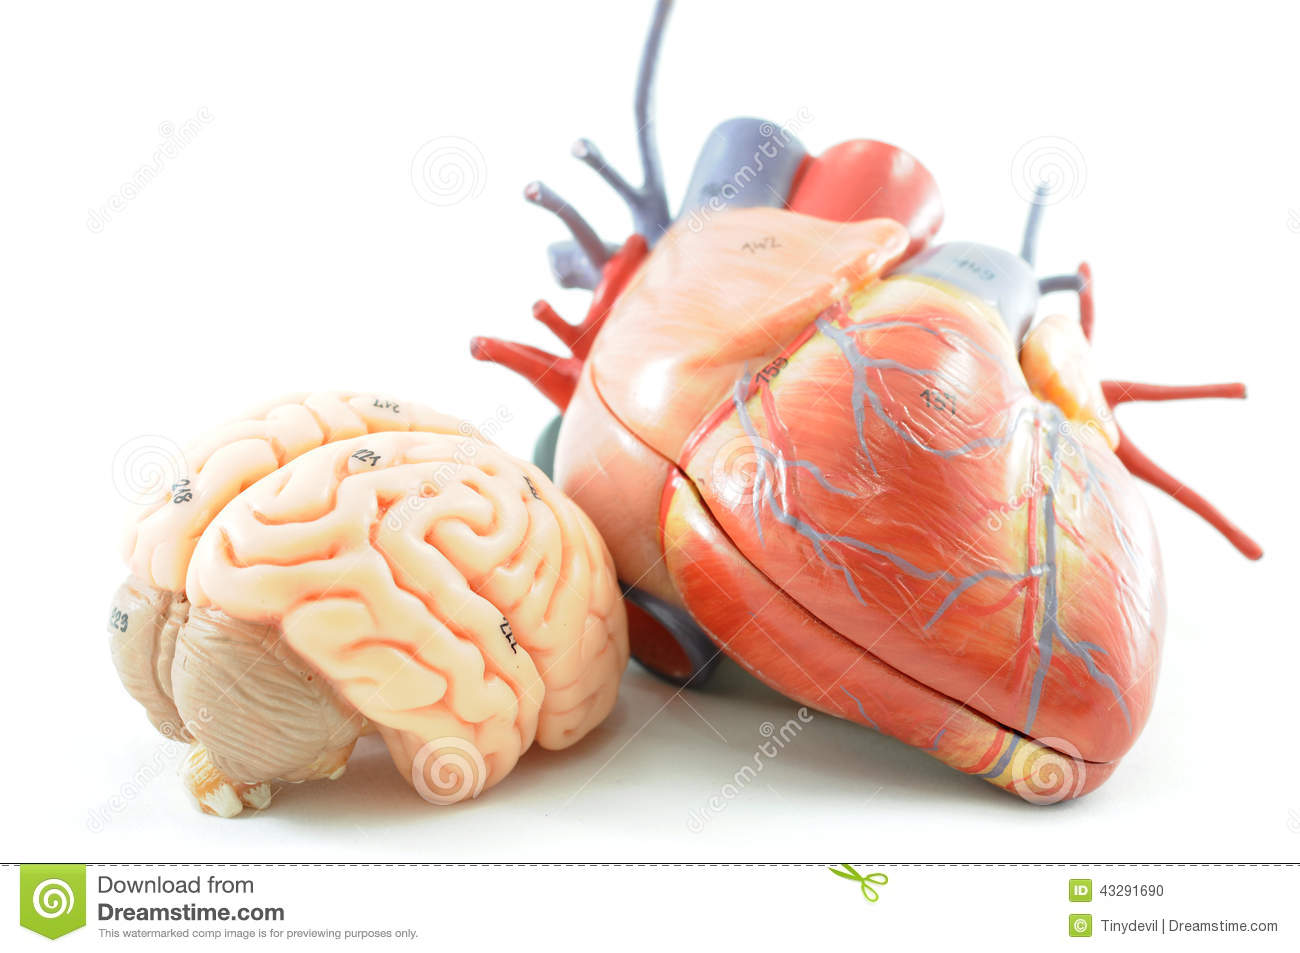 Anatomie Des Herzens Stock Images - Download 117 Photos